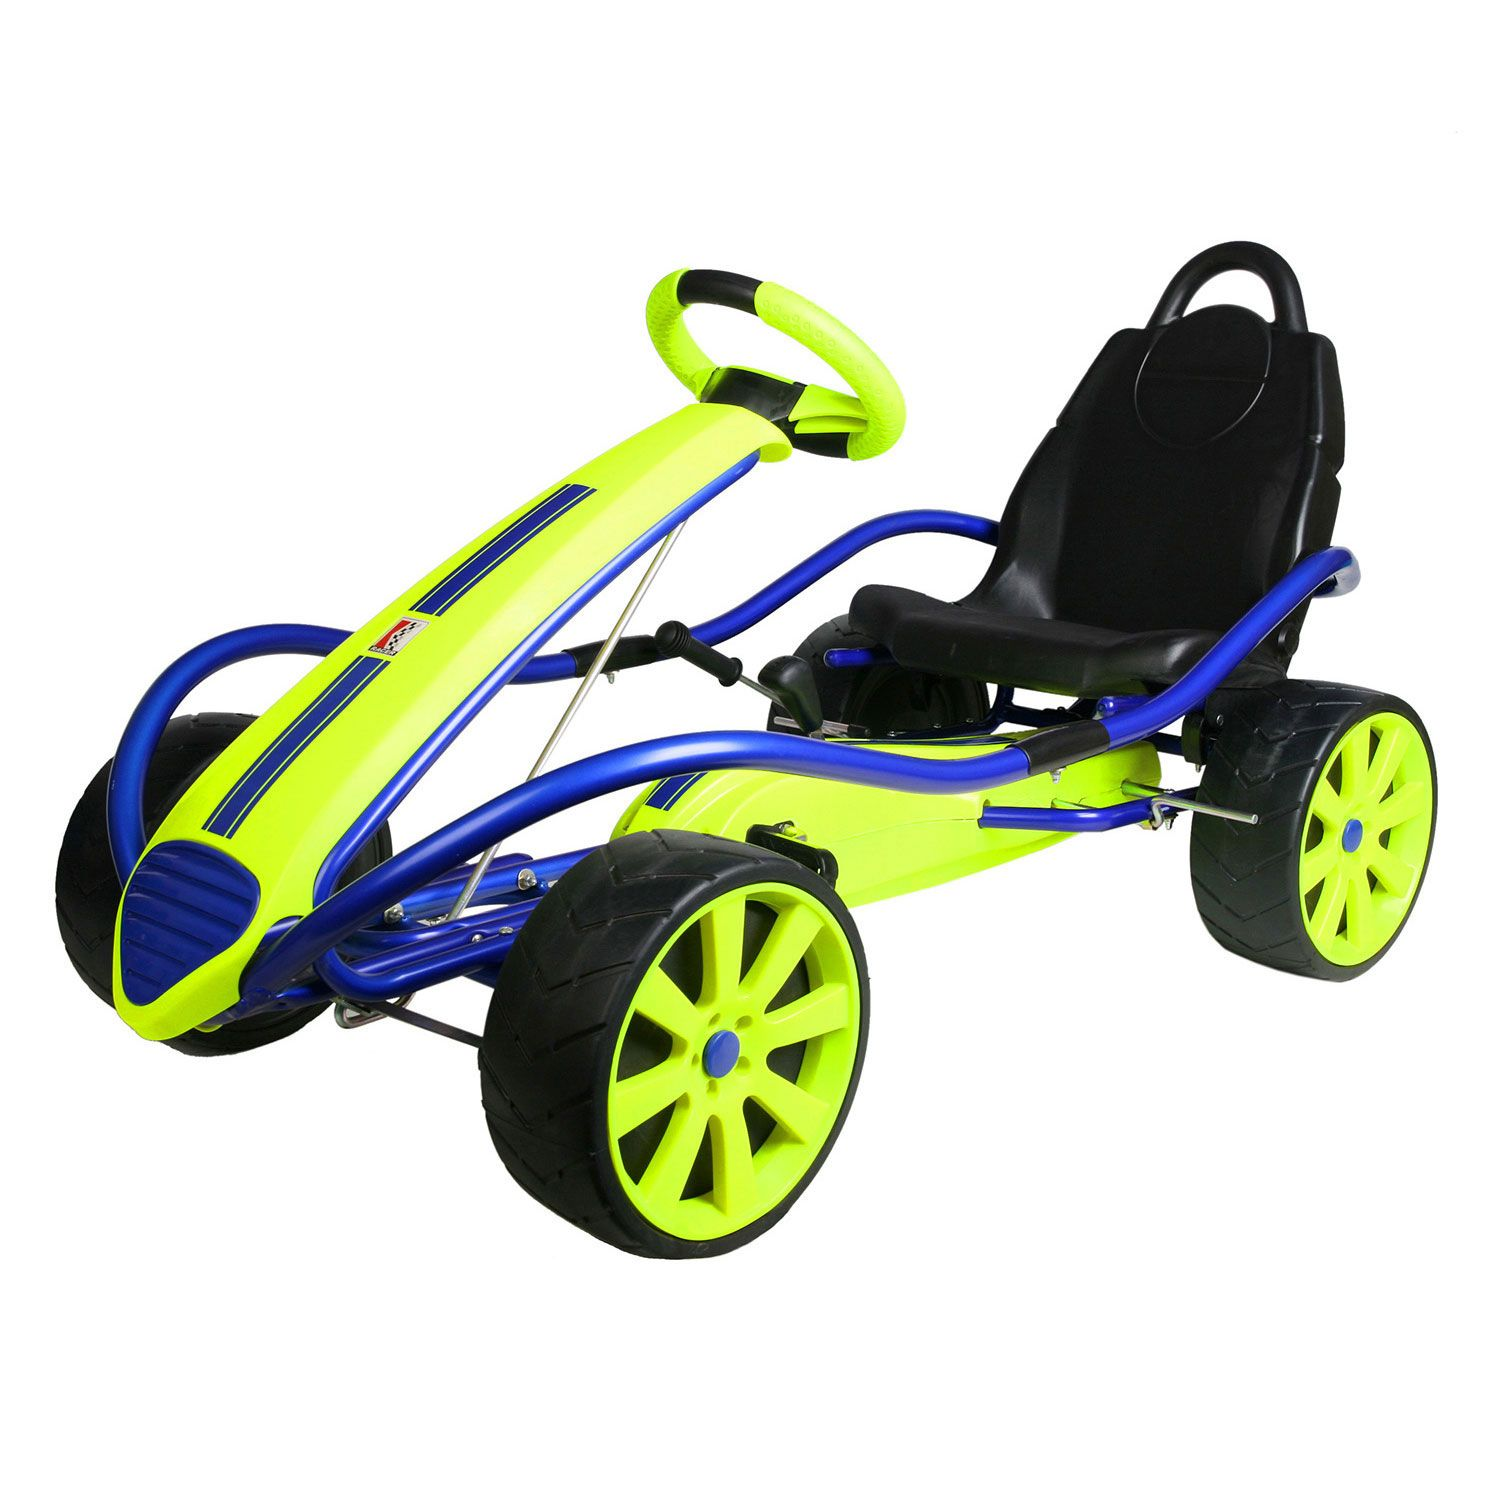 Kettler Kids Comfort Kettler Sport Kid Racer Pedal Car Blue Yellow